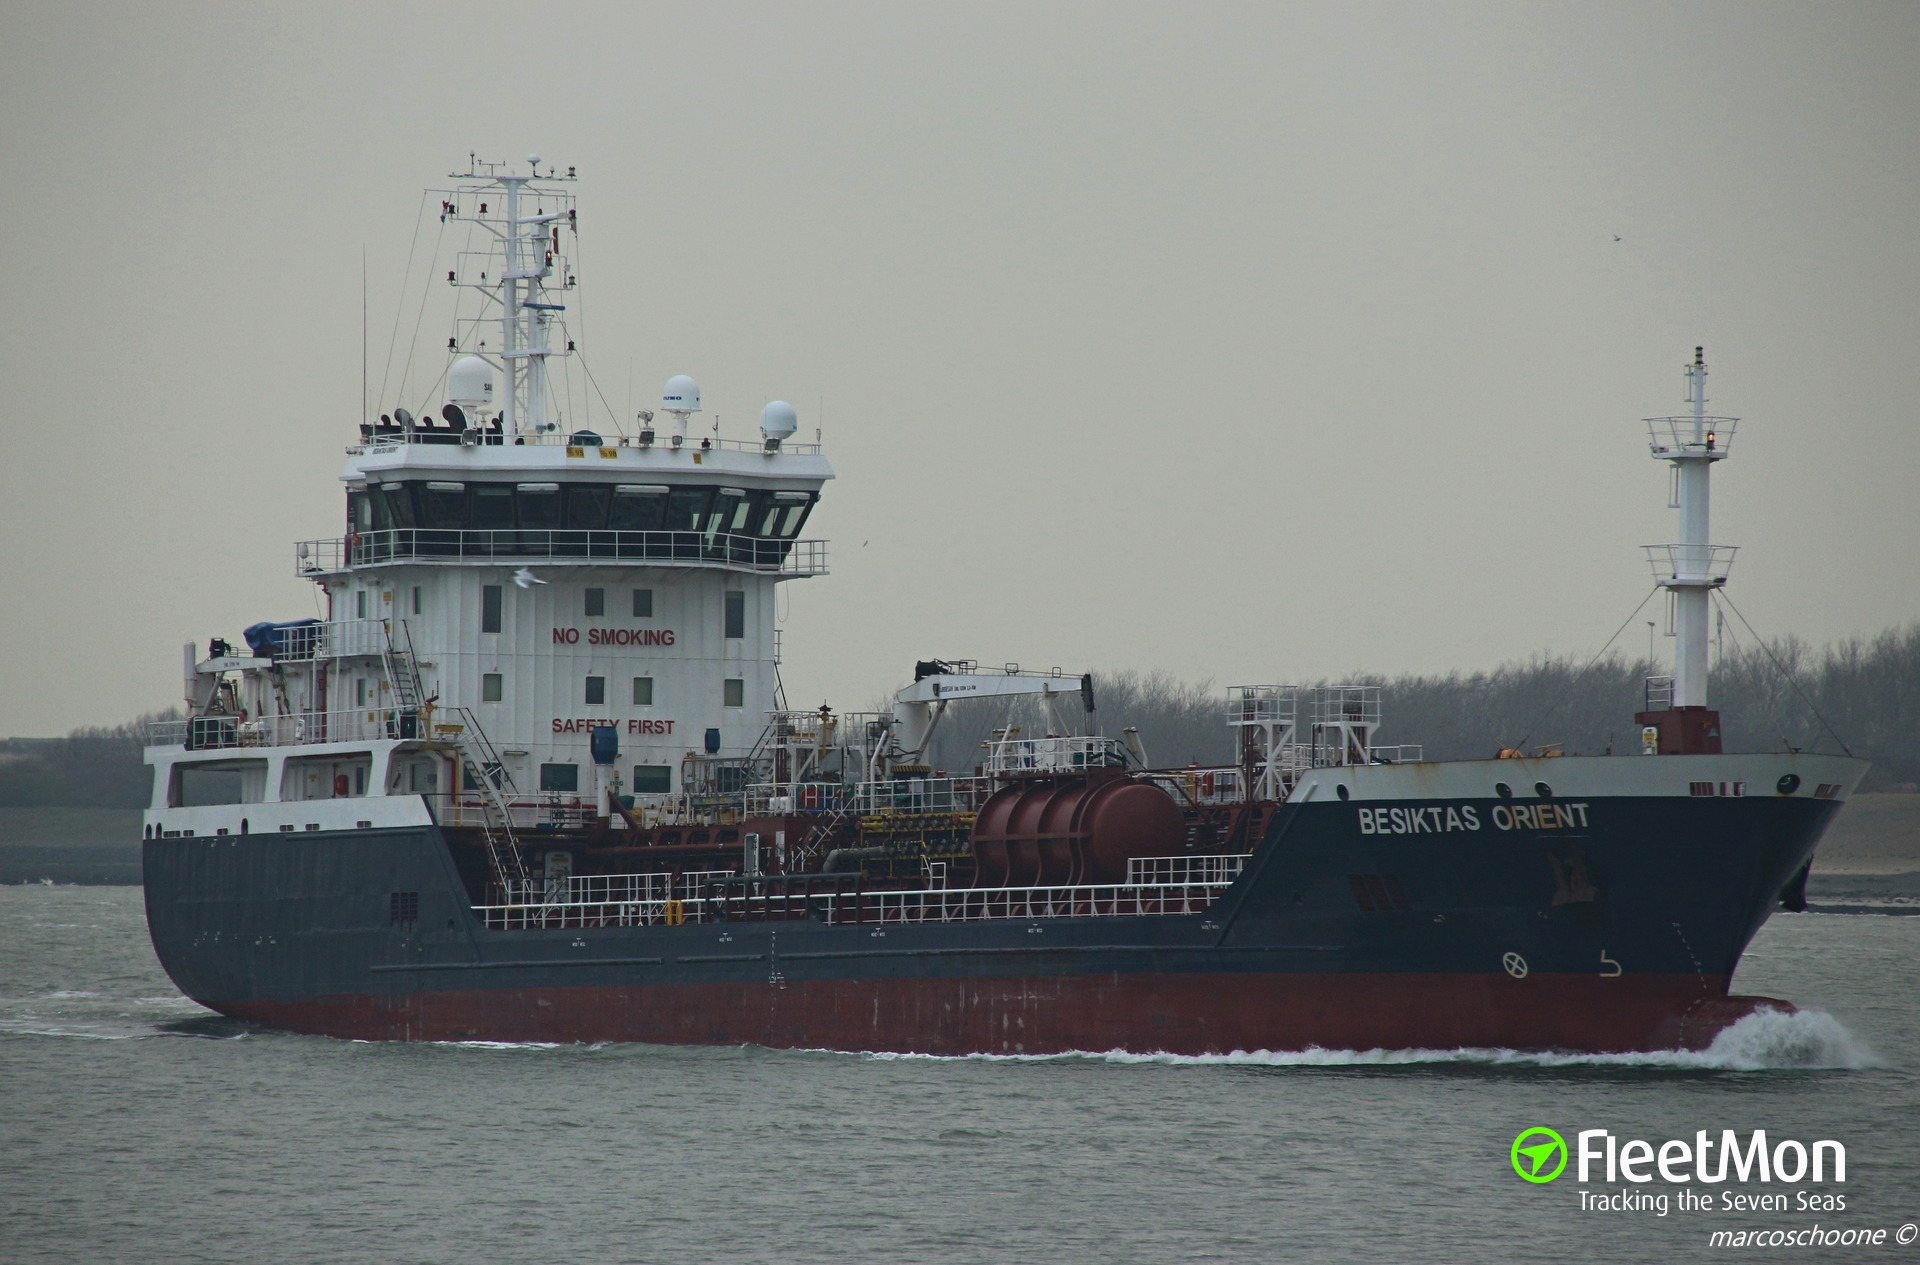 Product tanker BESIKTAS ORIENT towed to Brest